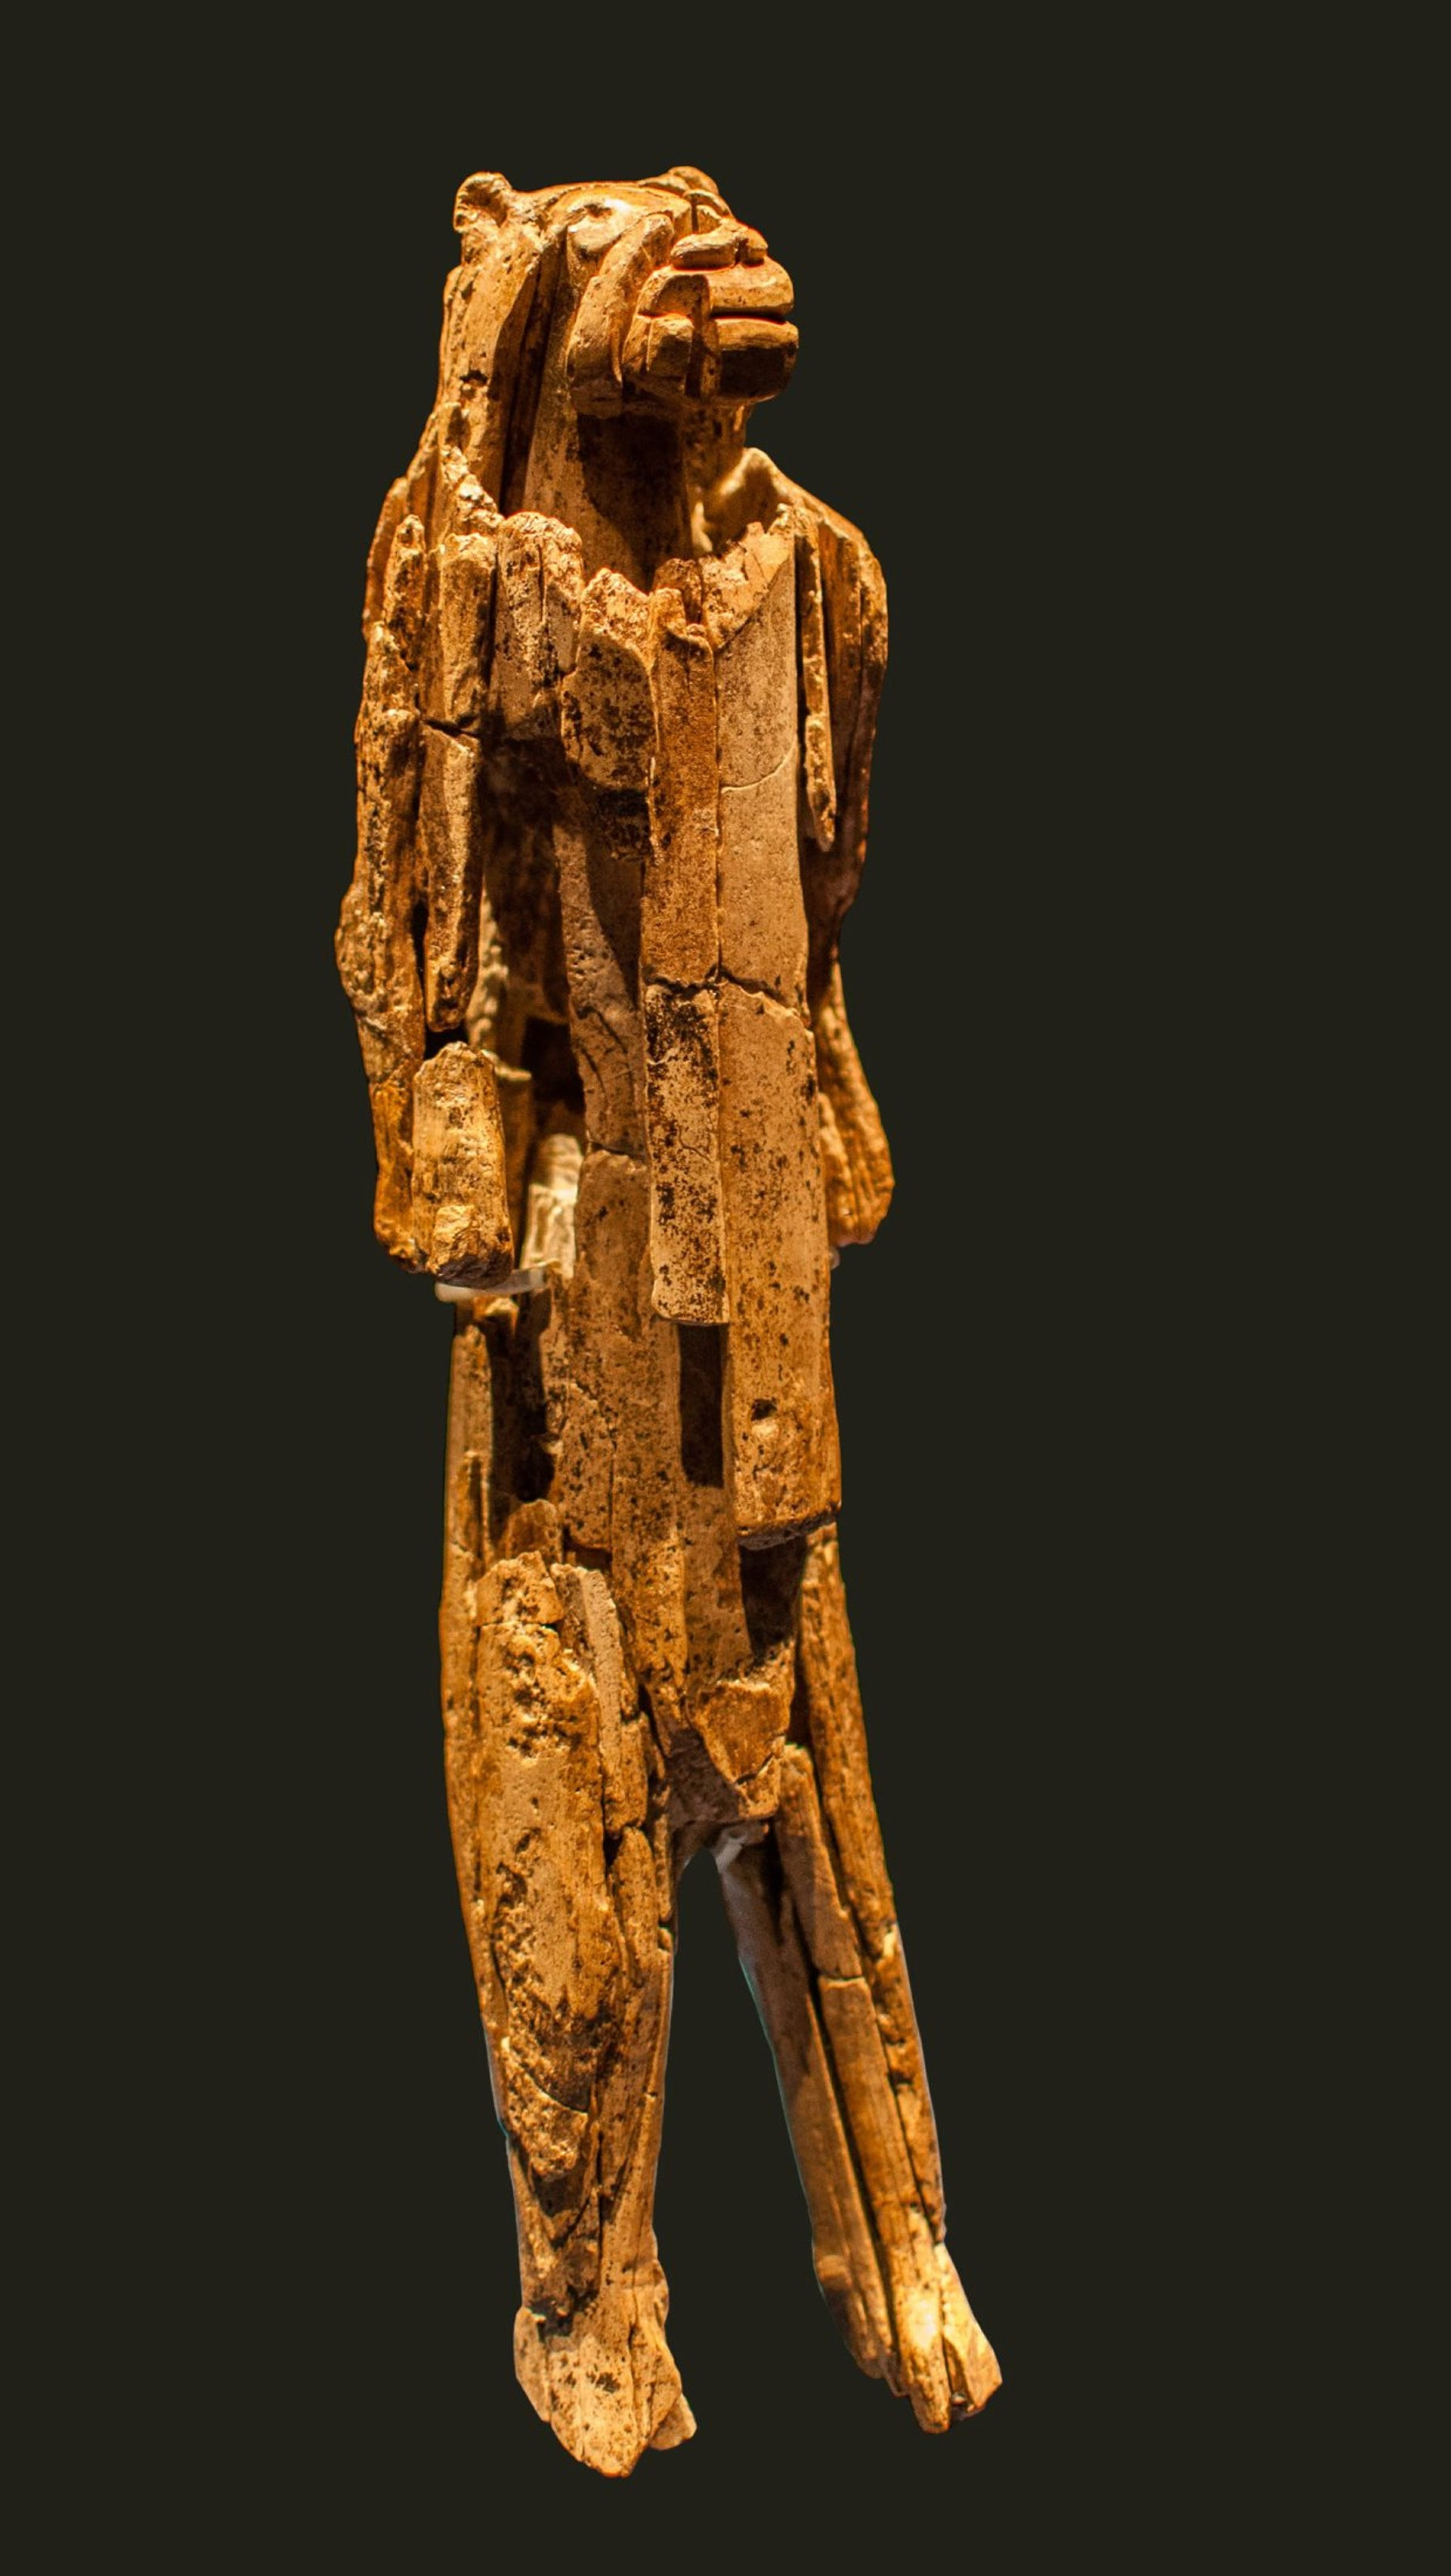 Lion Man (or Lionness Woman, people are still arguing about that) from Löwenmensch, dating to about 32,000 years ago. Homo sapiens made this. Neanderthal is not known for making anything comparable.